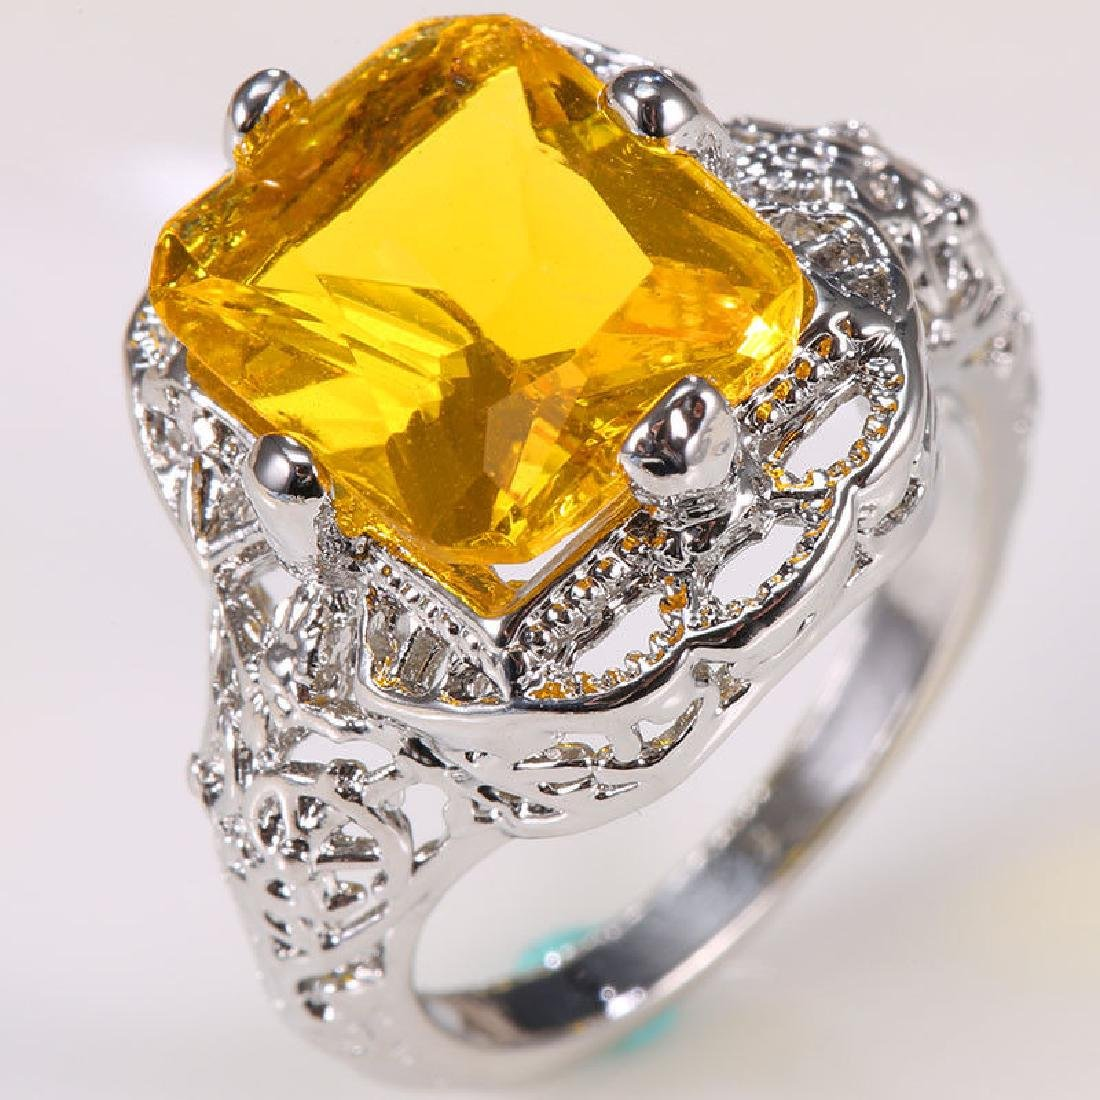 Yellow Topaz 1.9ct 925 Silver Ring Size 6 - 3